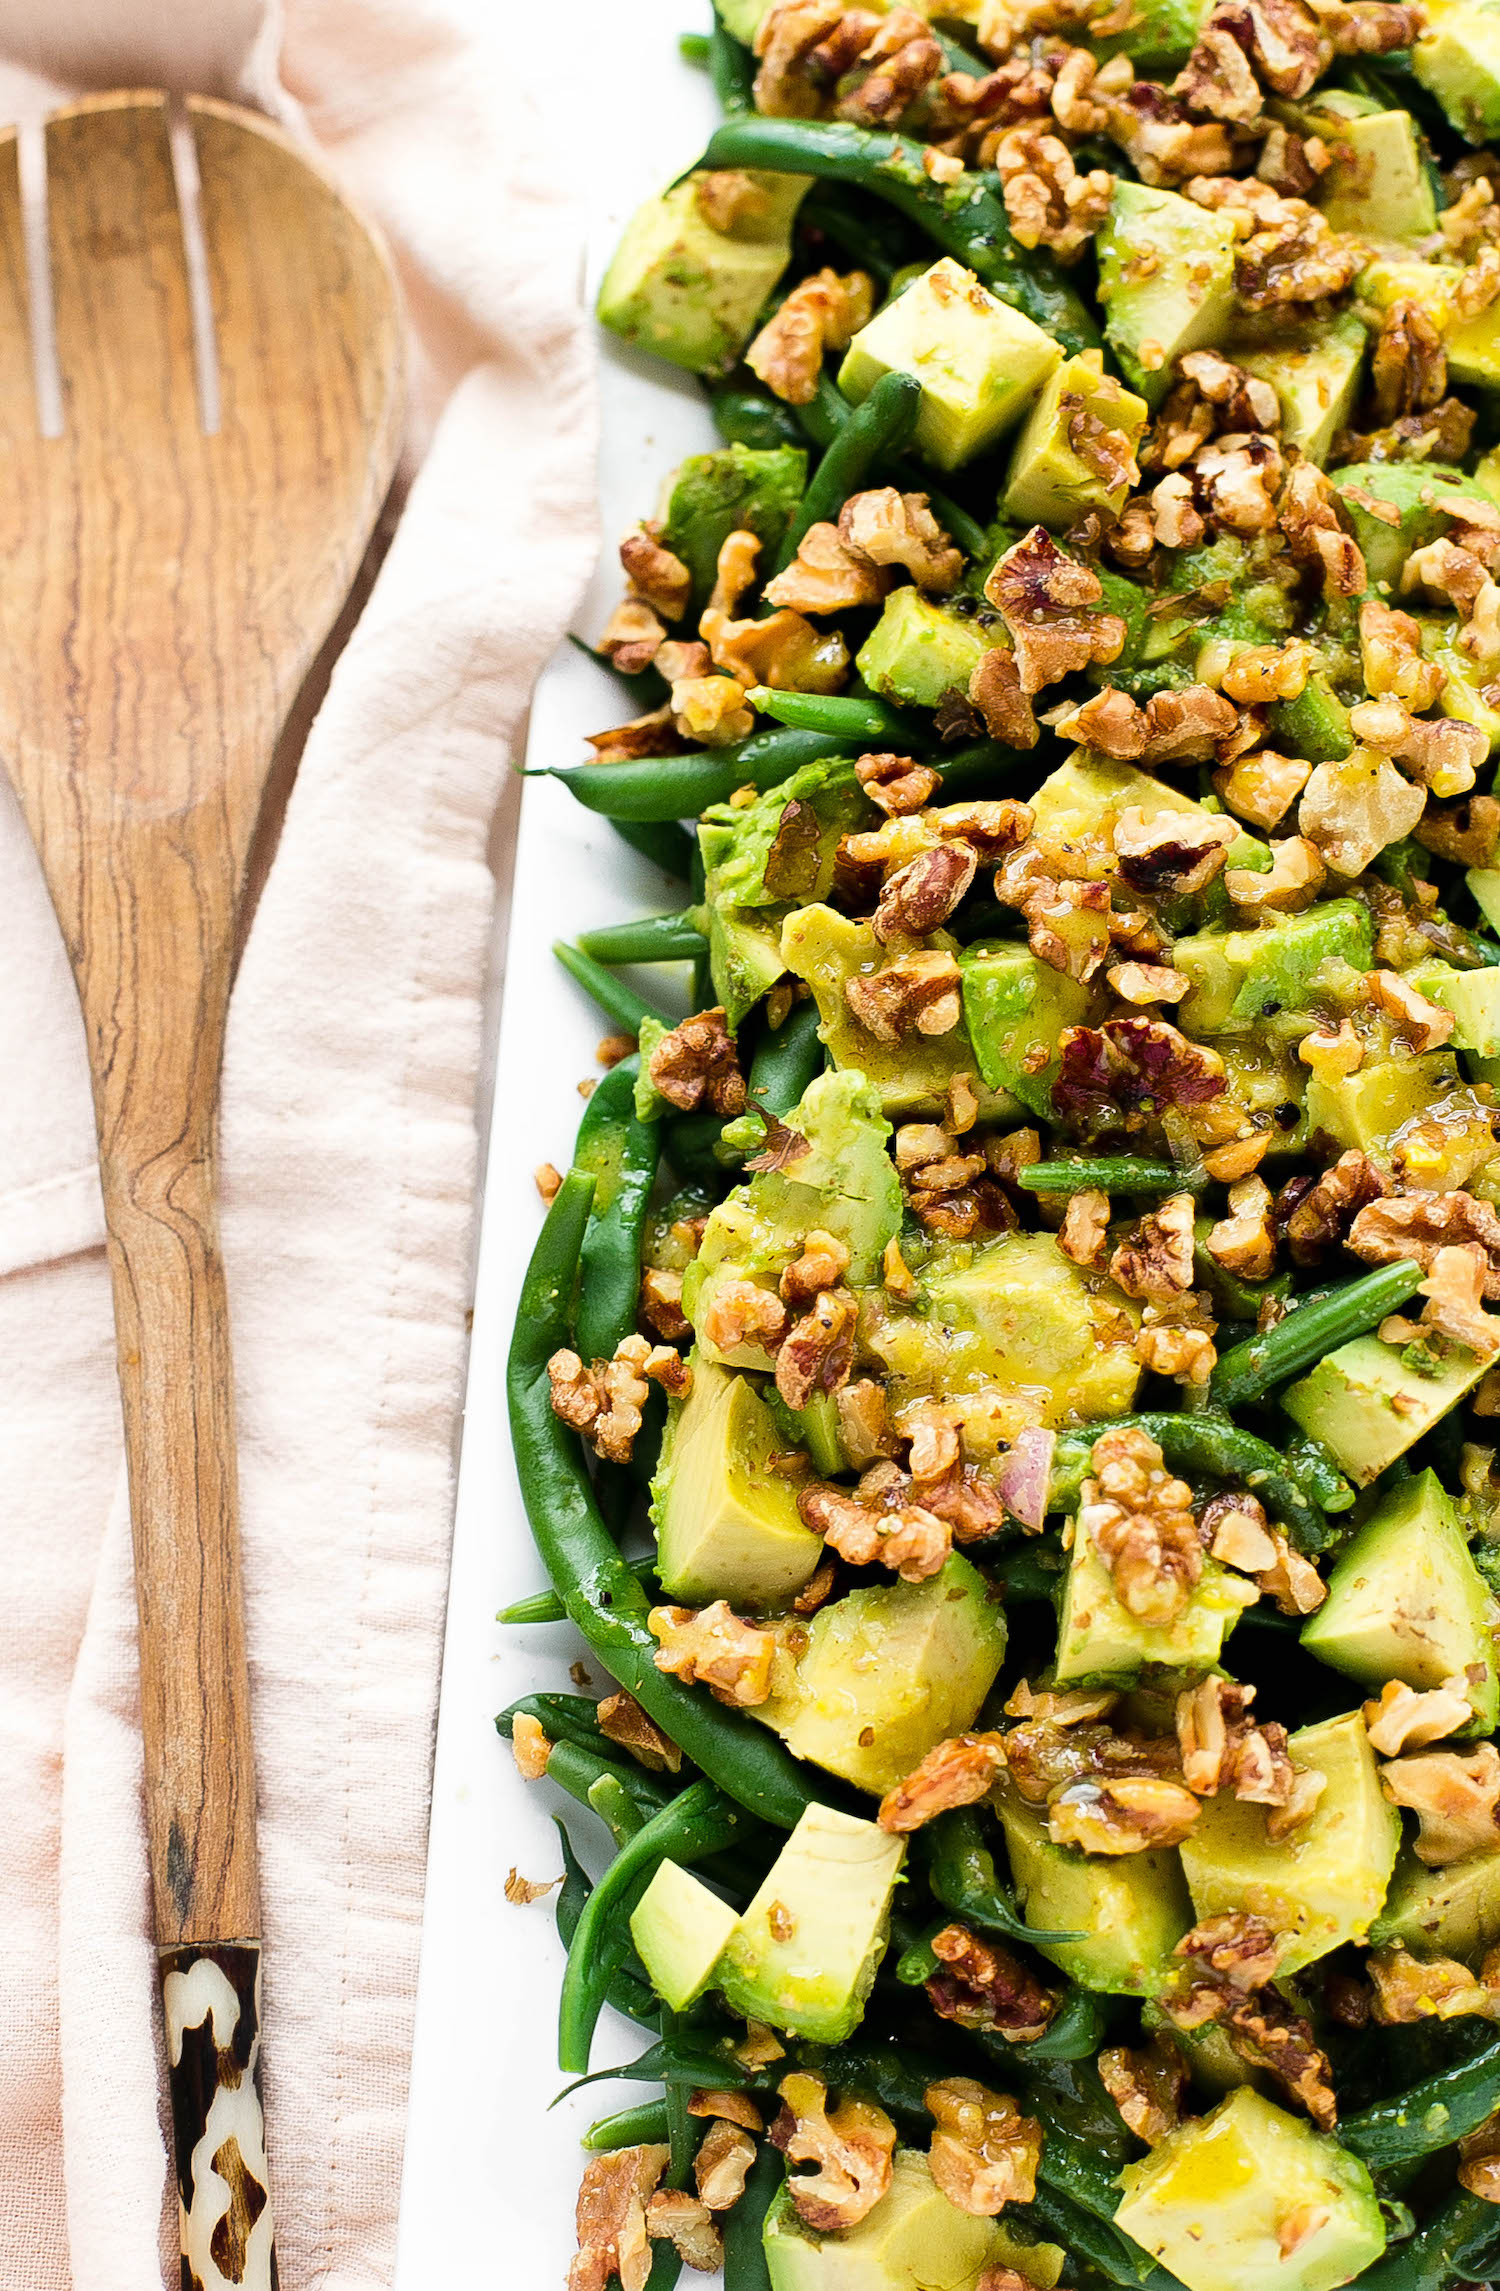 Honey Dijon Avocado Green Beans: crisp green beans with cubed avocado and toasted walnuts, tossed in a honey Dijon dressing.   TrufflesandTrends.com